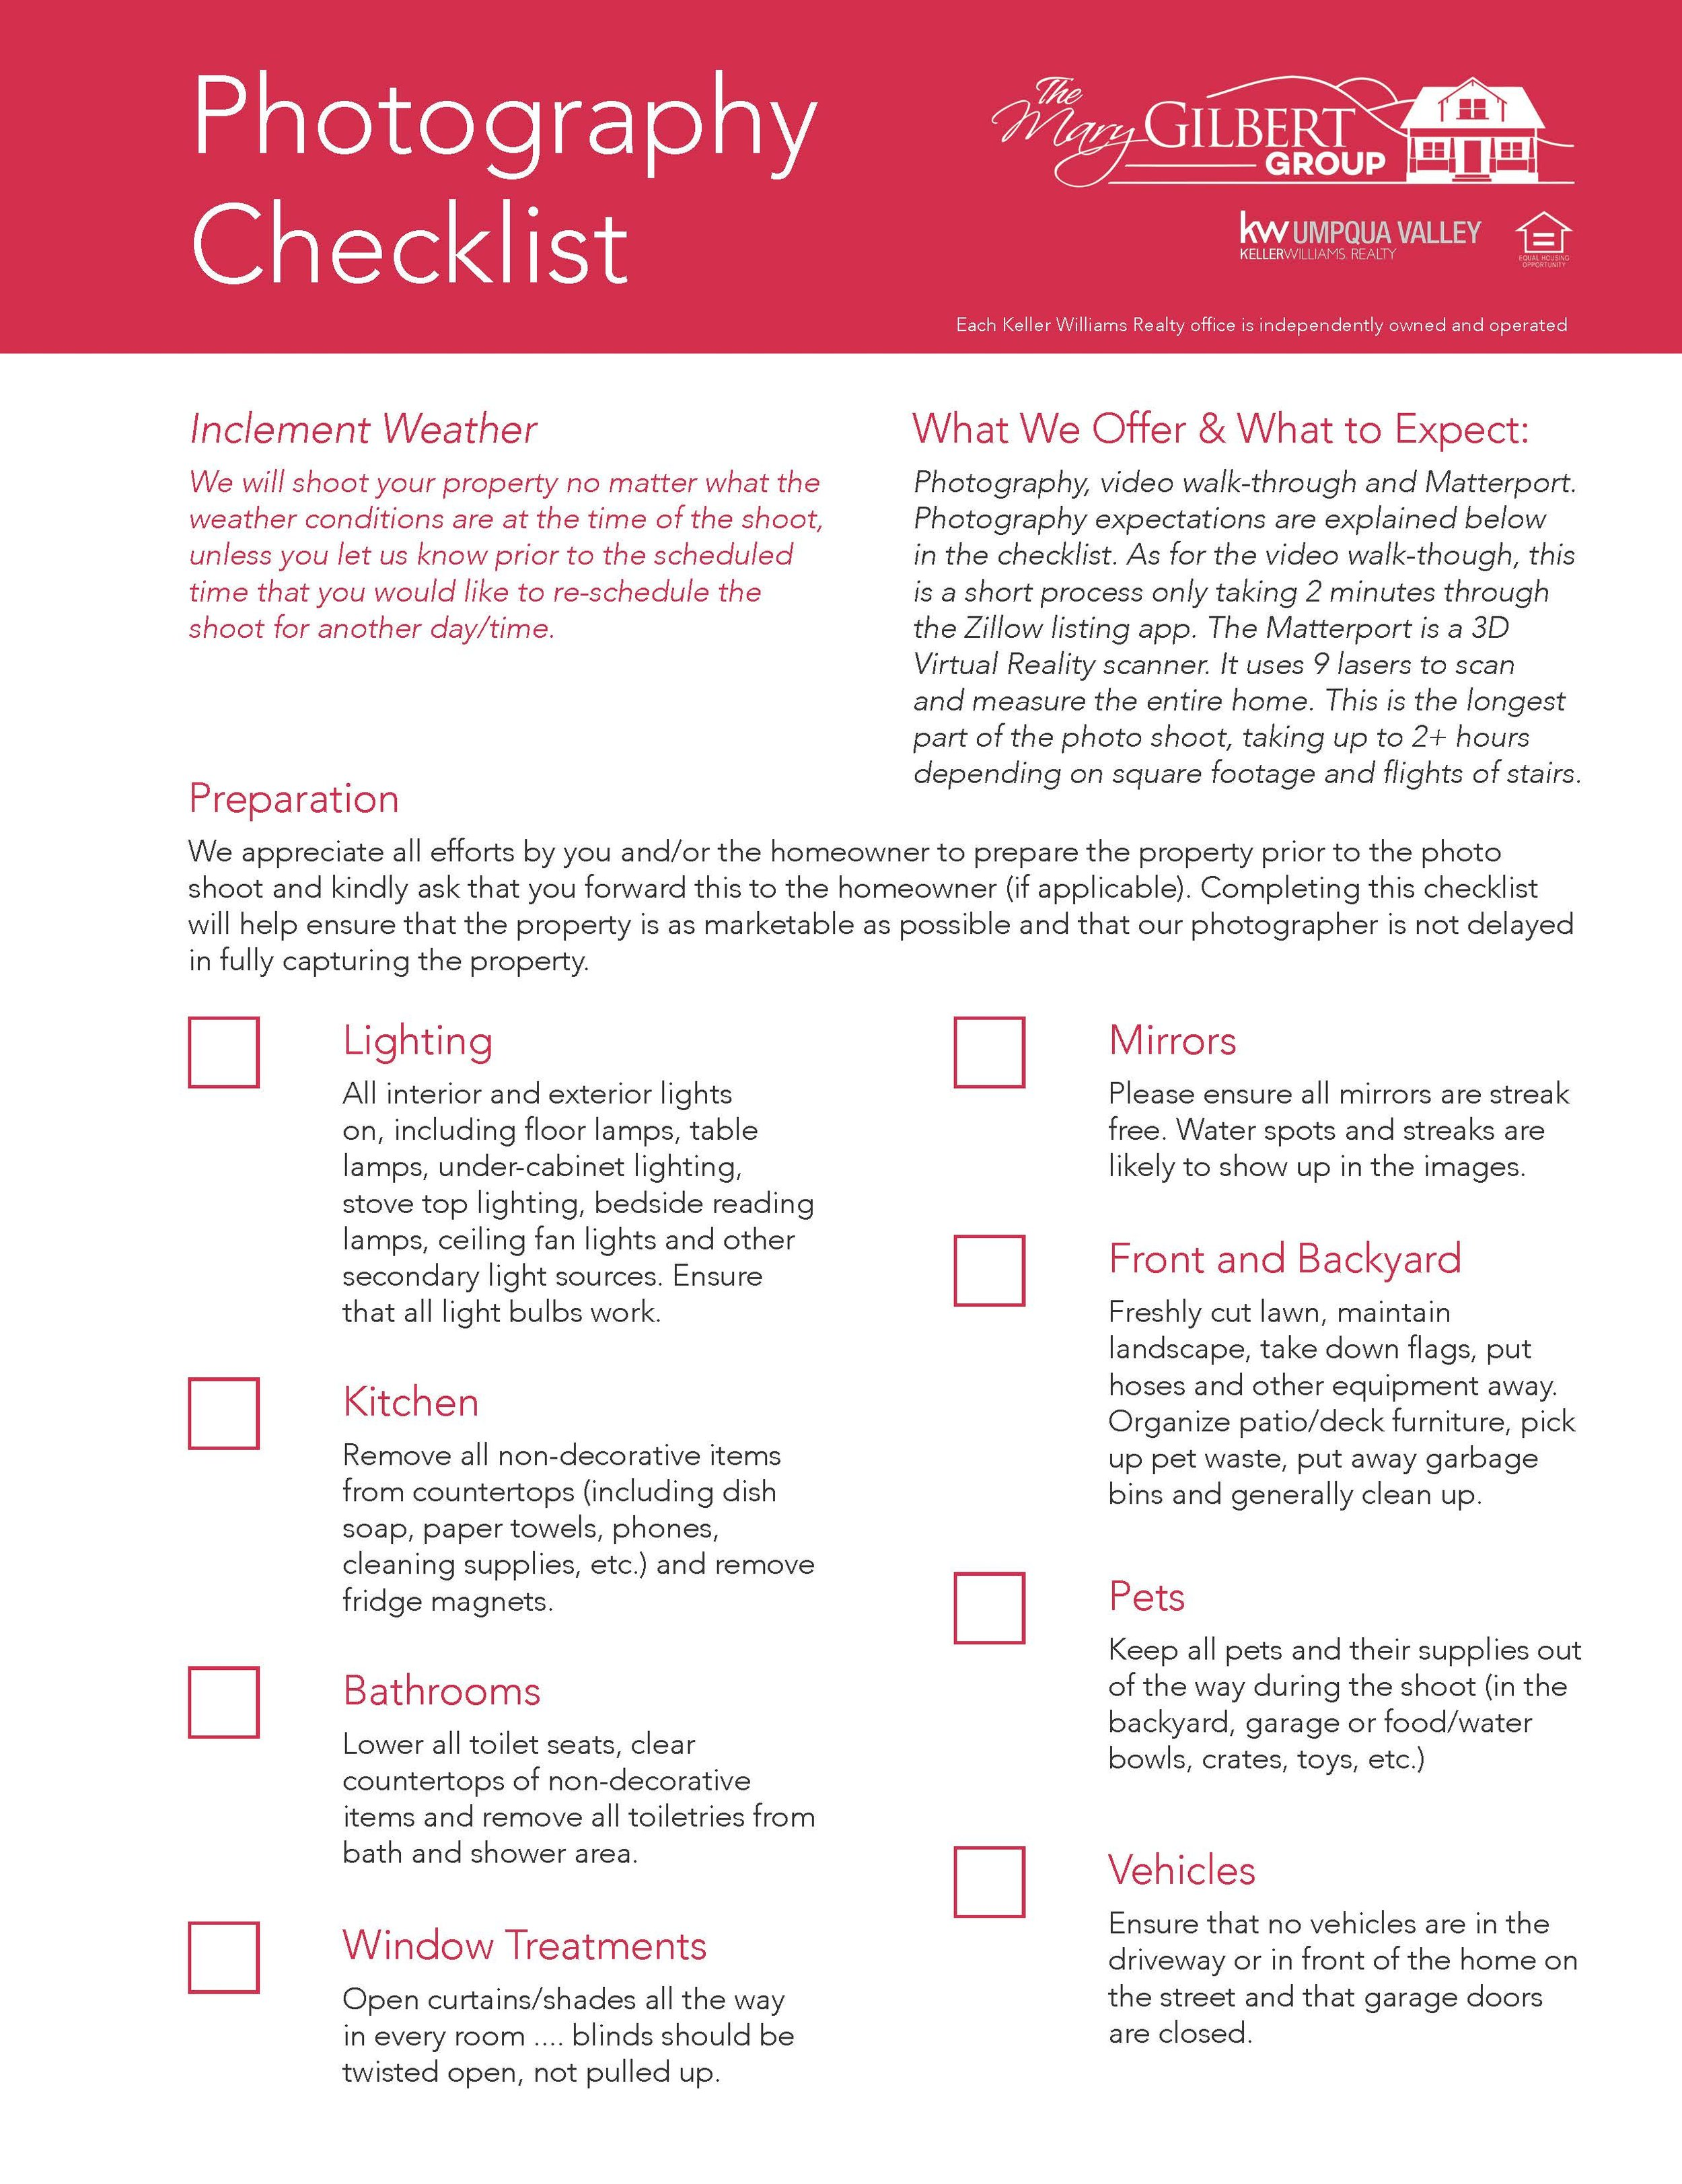 KW-MGG-Photography Checklist_Page_1.jpg